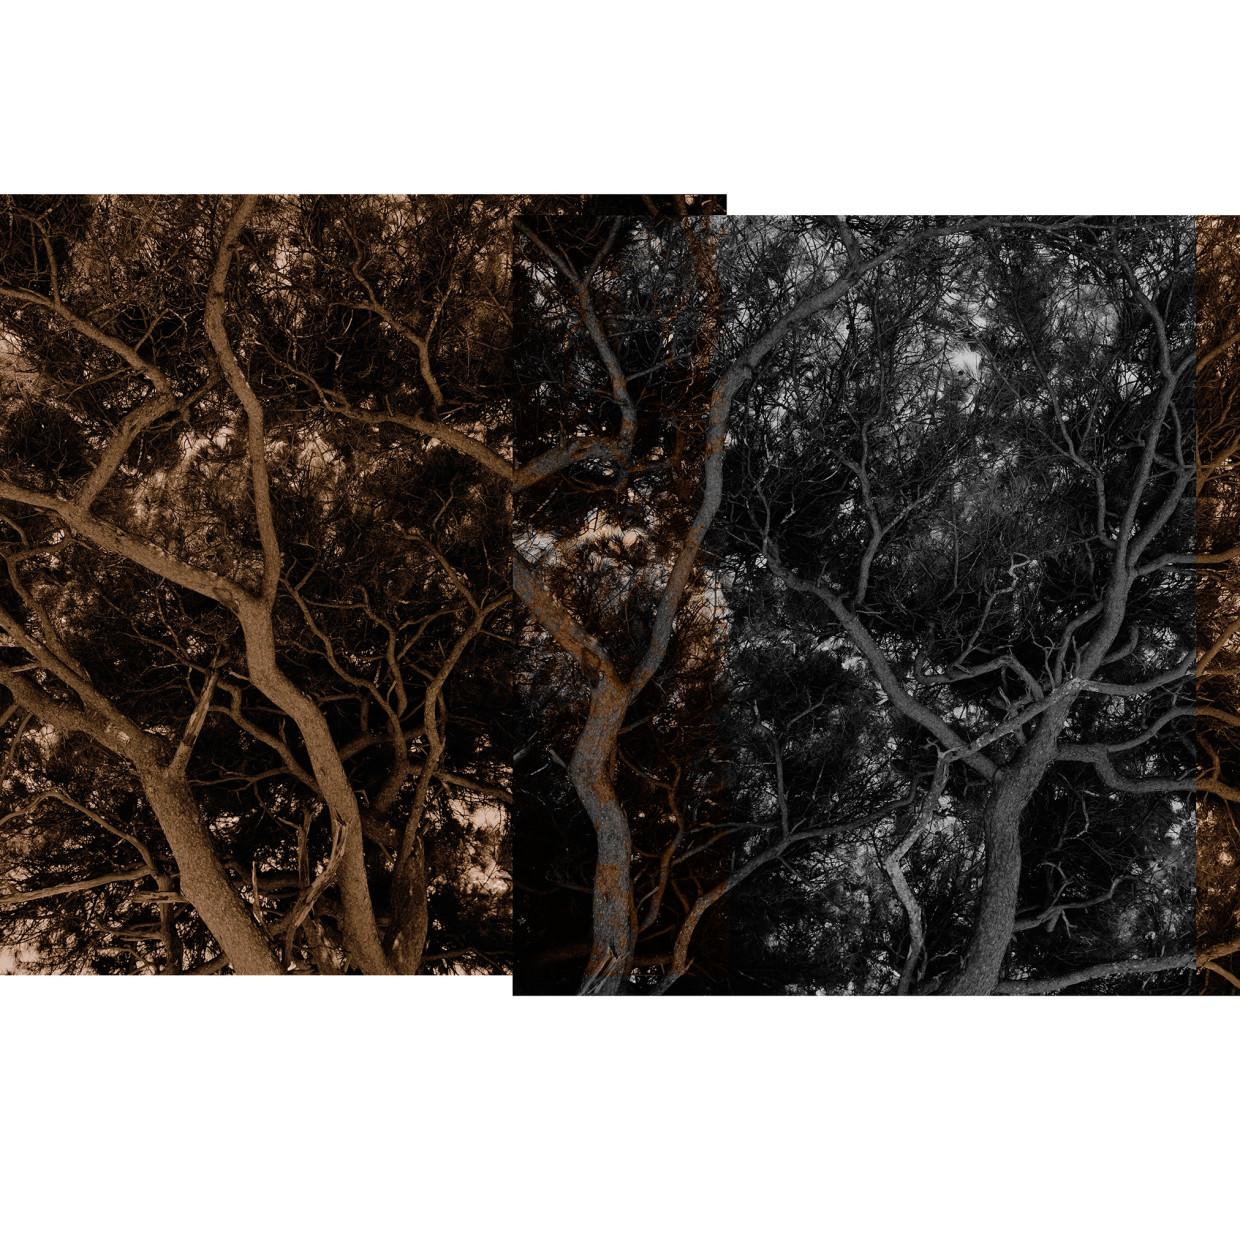 CARTOGRAPHIES OF LIGHT: NEW PHOTOGRAPHY FROM THE PHOTOGRAPHY DEPARTMENT OF LUXUN ACADEMY OF FINE ARTS Artists: Ao Guoxing, Feng Mengjin,...